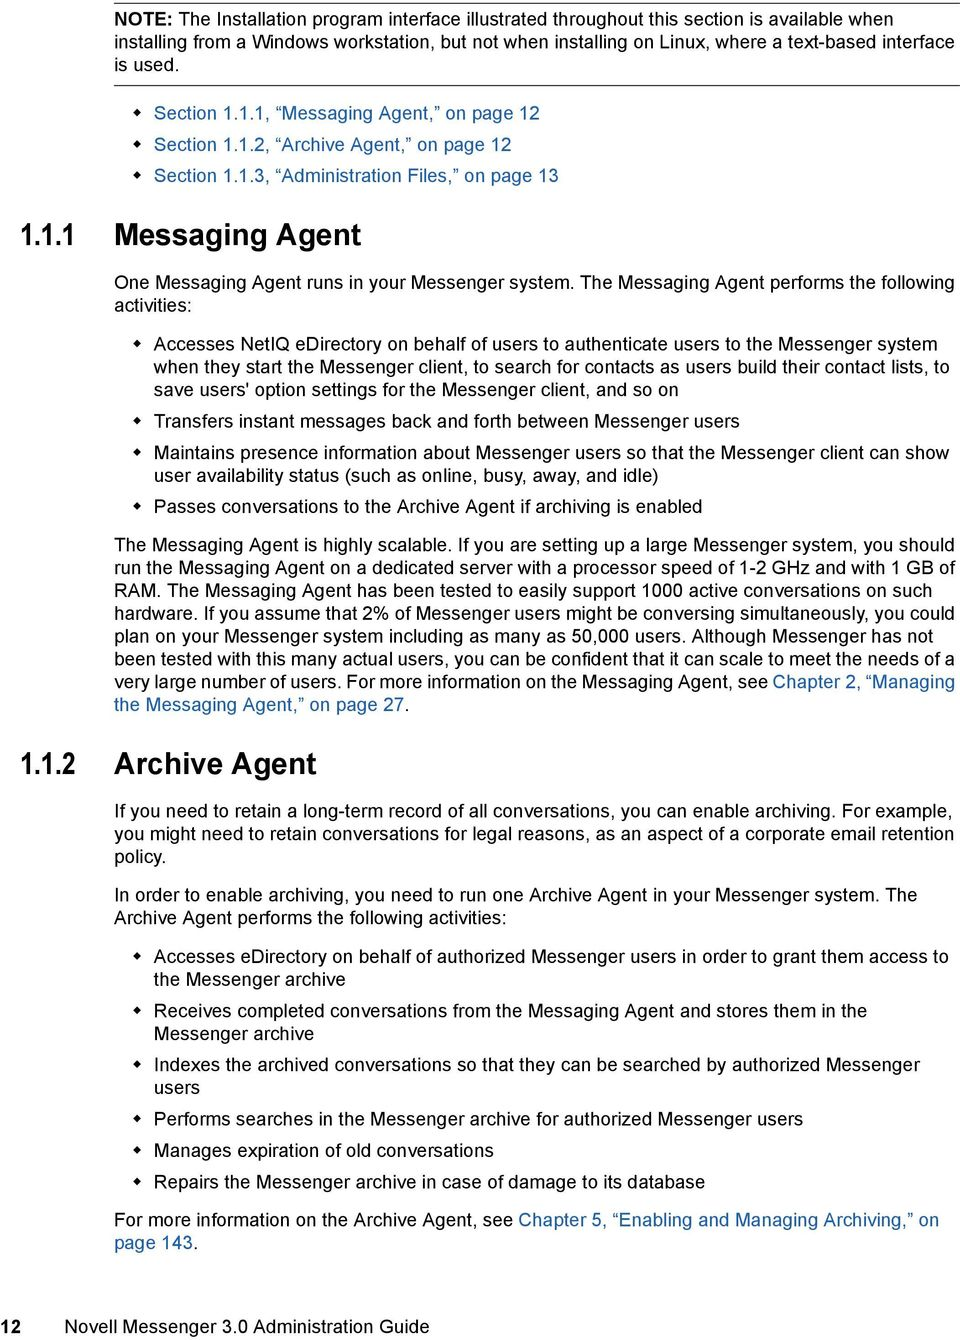 The Messaging Agent performs the following activities: Accesses NetIQ edirectory on behalf of users to authenticate users to the Messenger system when they start the Messenger client, to search for